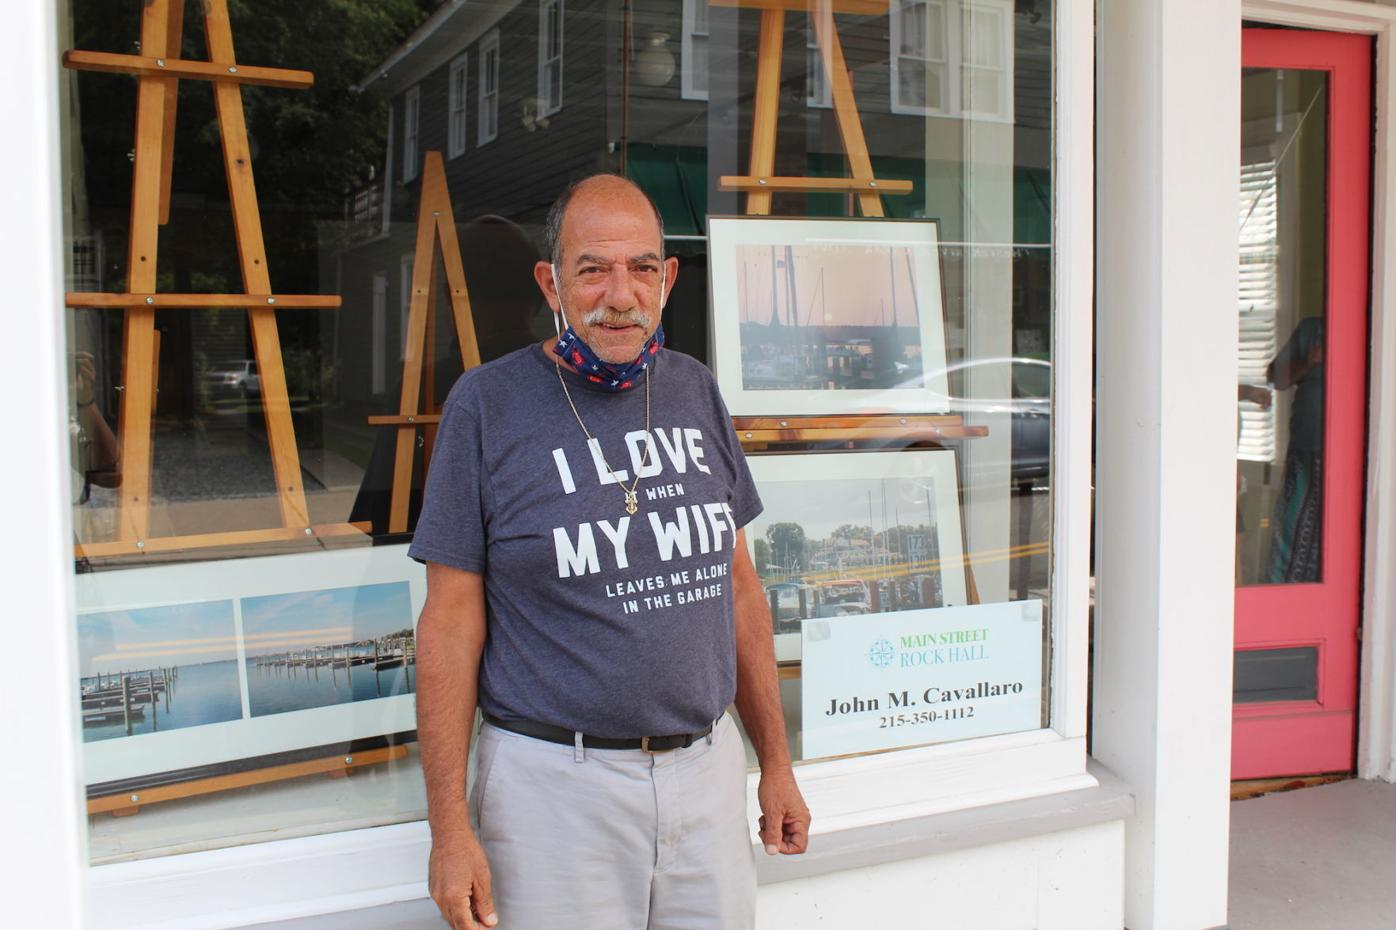 Local artists decorate Rock Hall storefronts